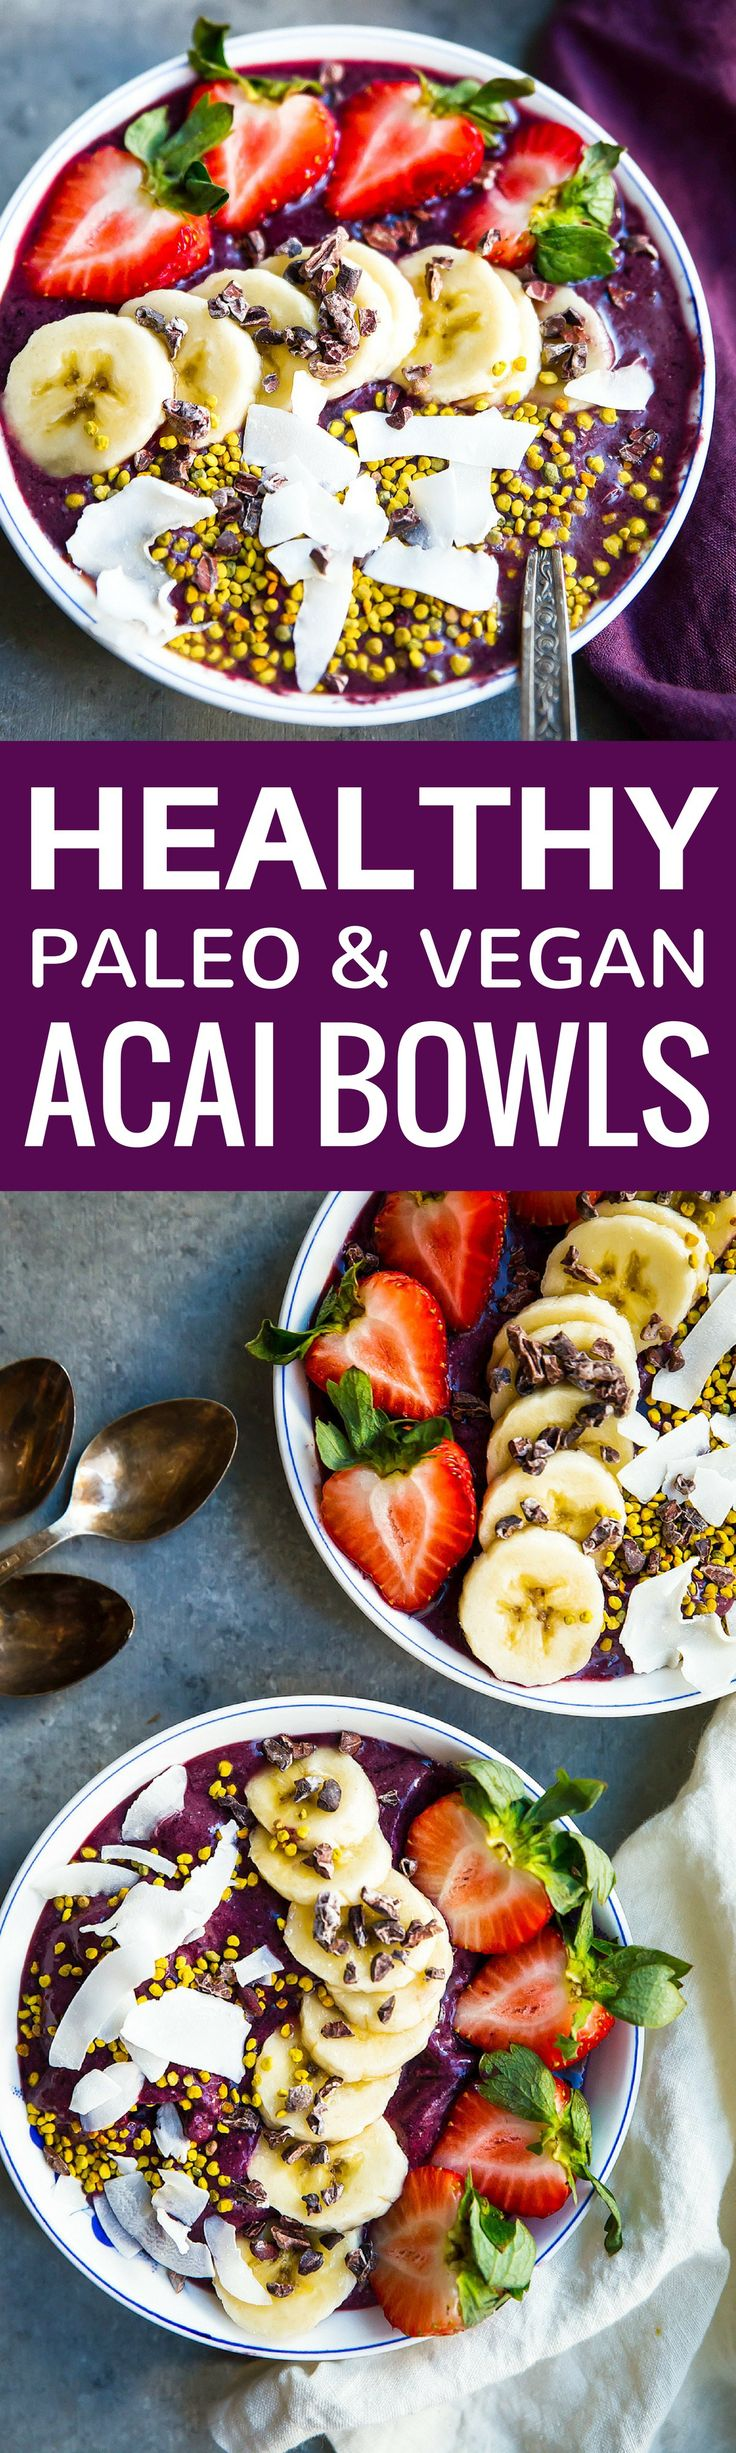 Acai bowl recipe. How to make acai bowl. Homemade acai bowl. Healthy acai bowl. Vegan acai bowl. Paleo acai bowl recipe.